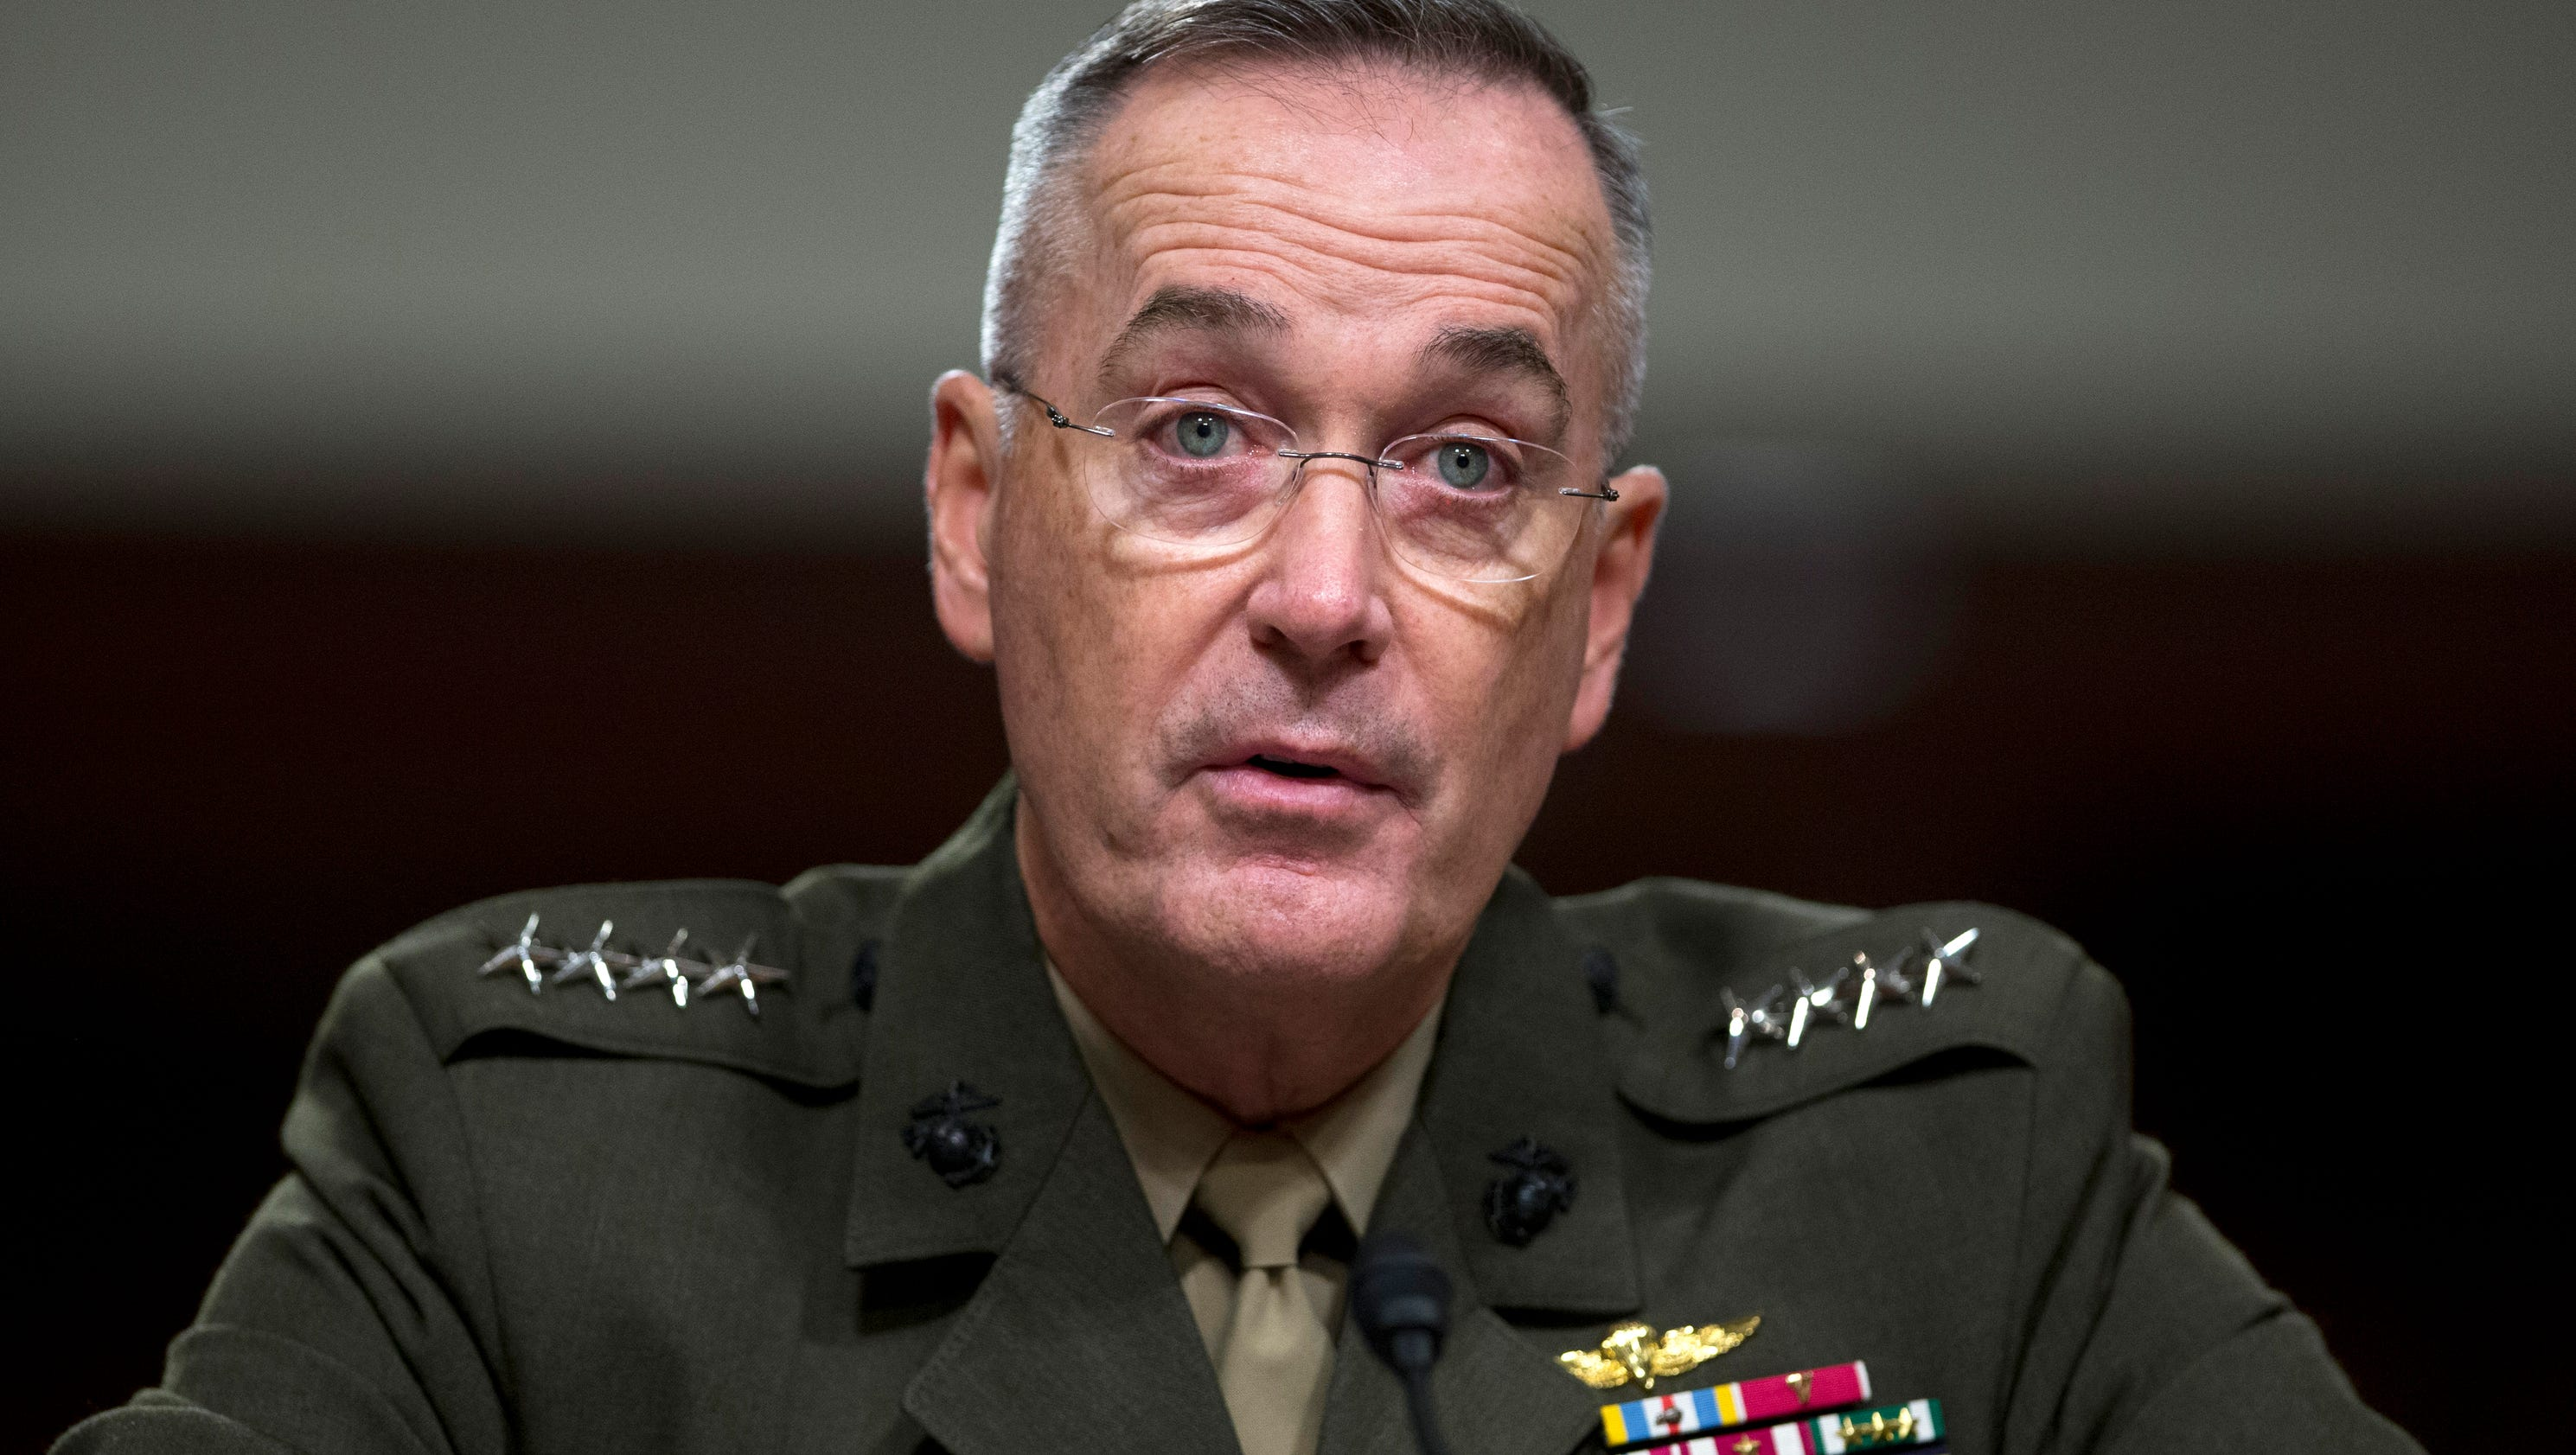 Live stream: Gen. Dunford briefs reporters on operations in Niger